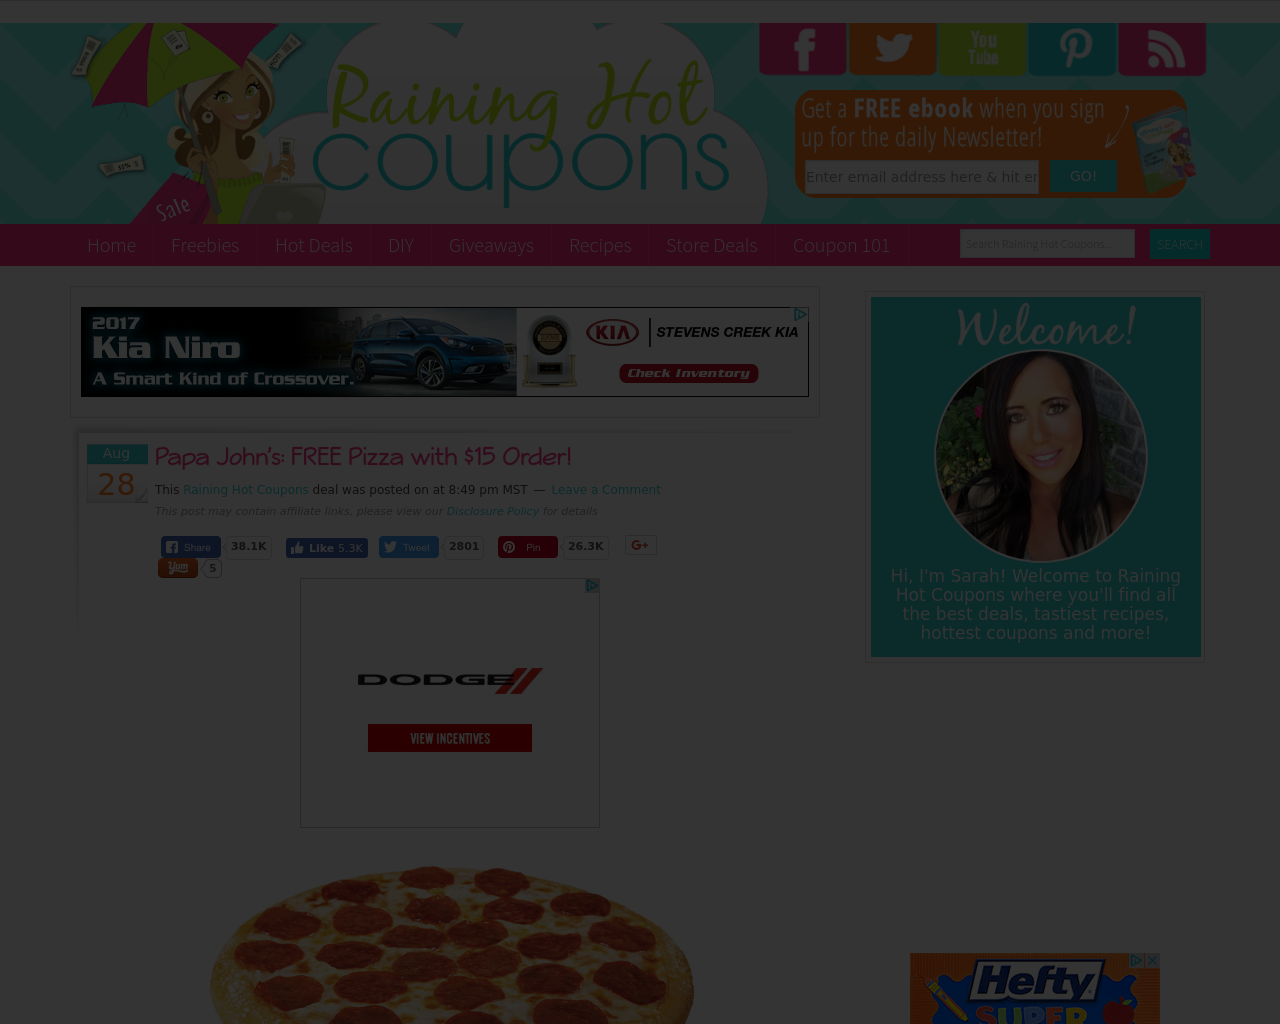 Raining-Hot-Coupons-Advertising-Reviews-Pricing